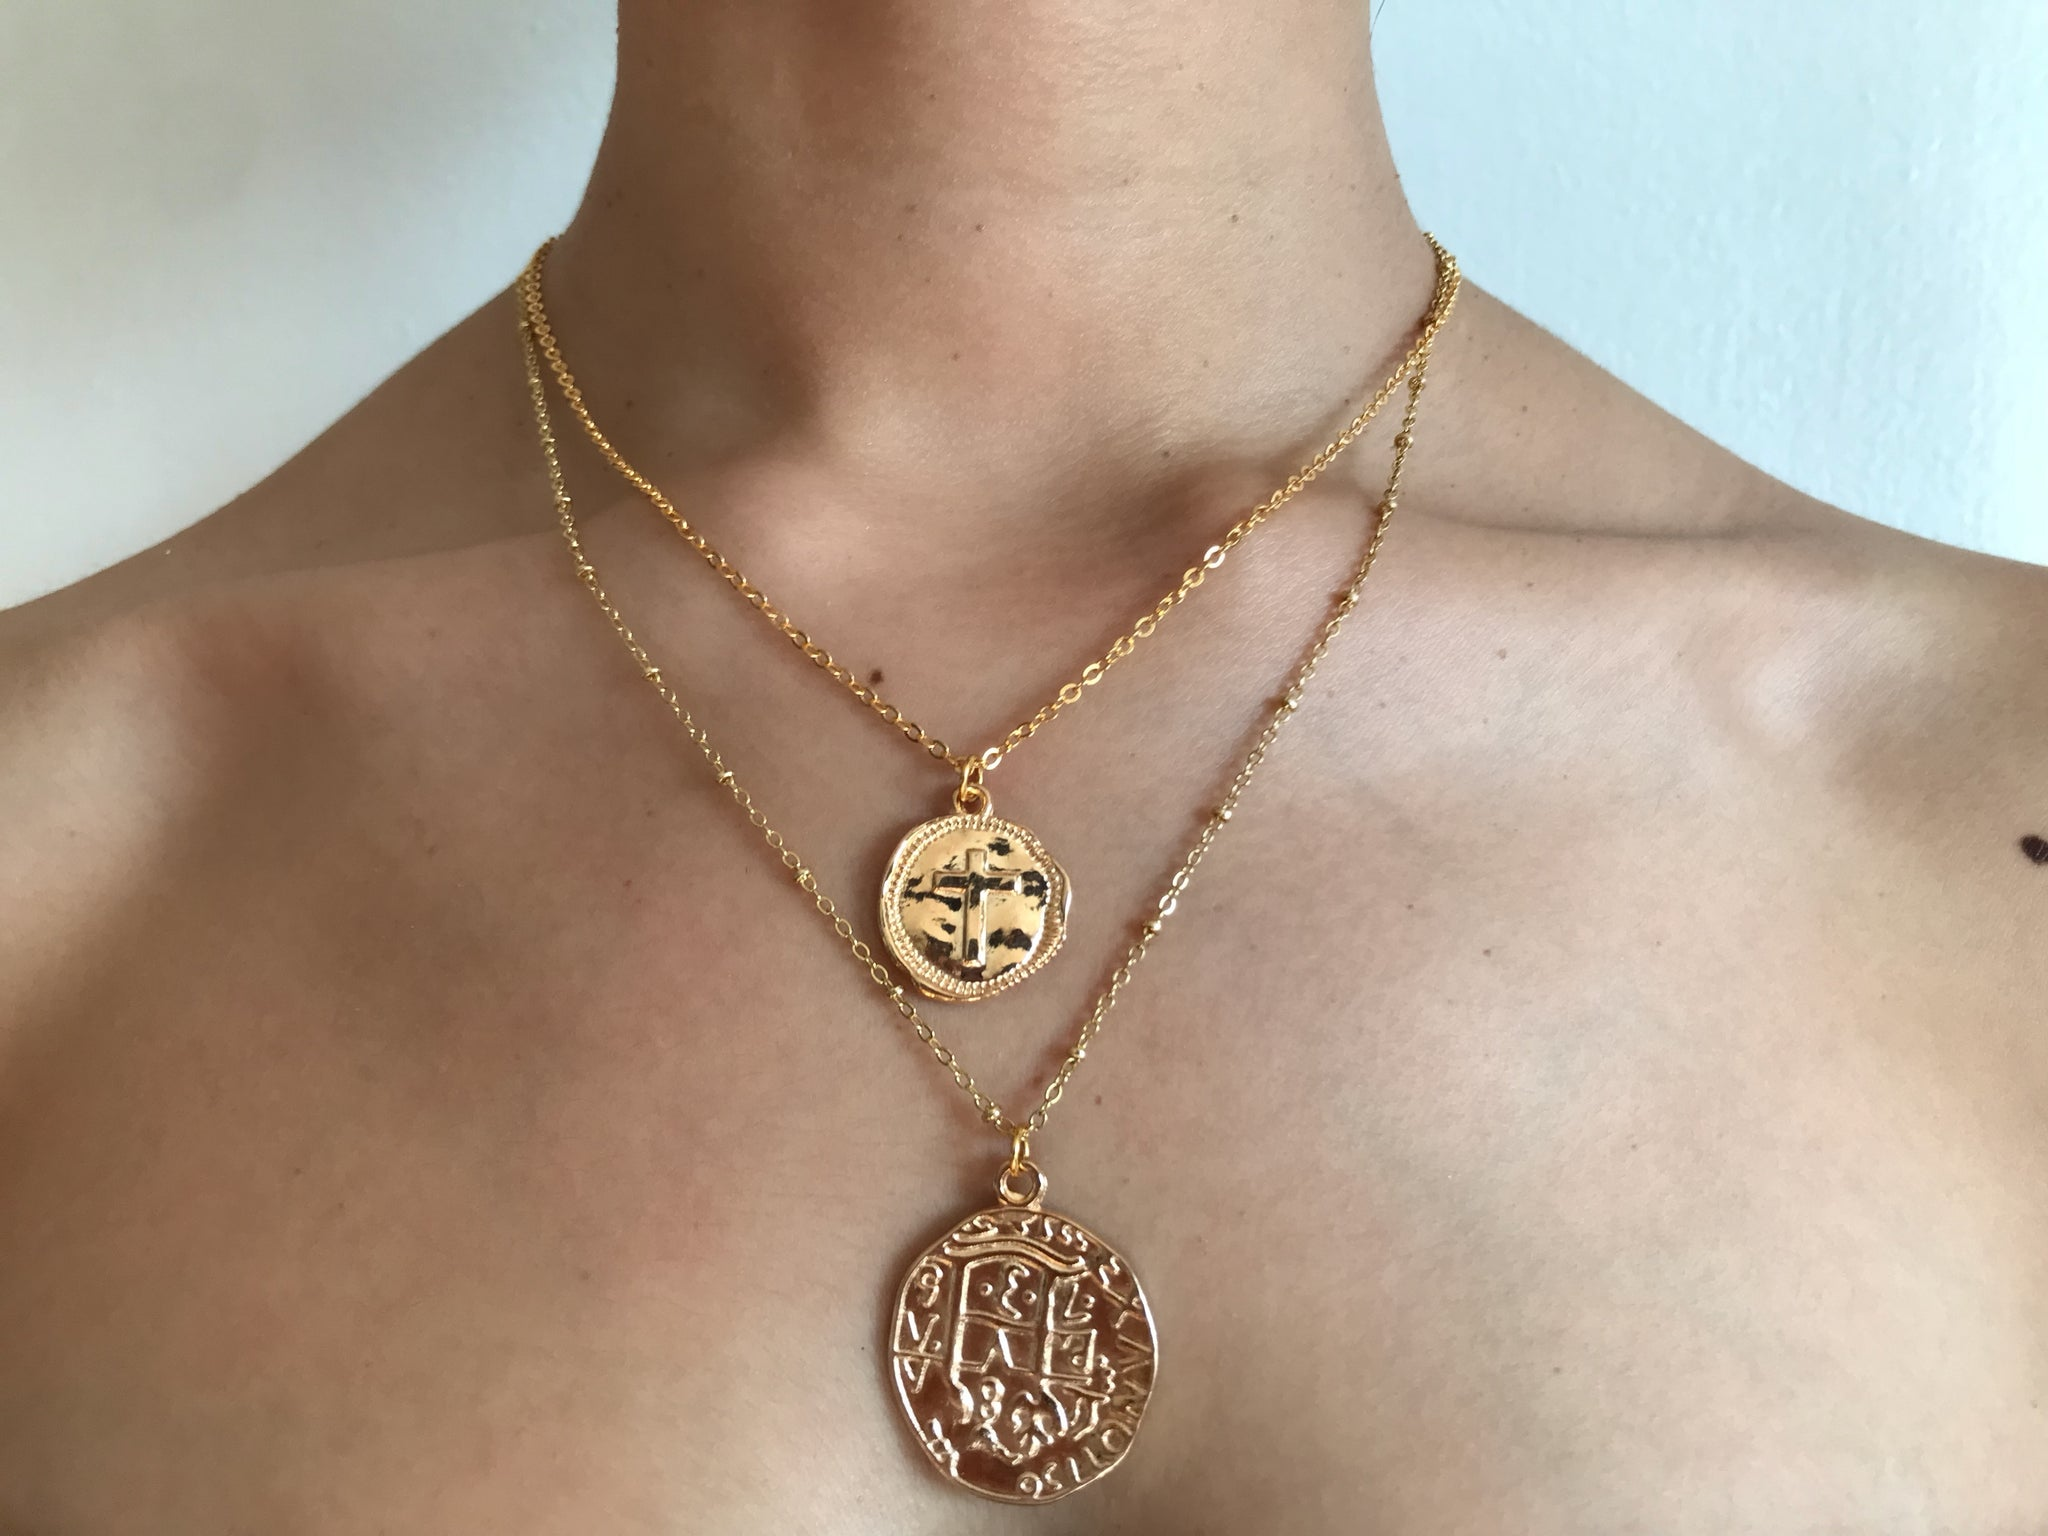 Cross coin necklace, collar de cruz, collar de oro, gold necklace, gold coin necklace, cross jewelry